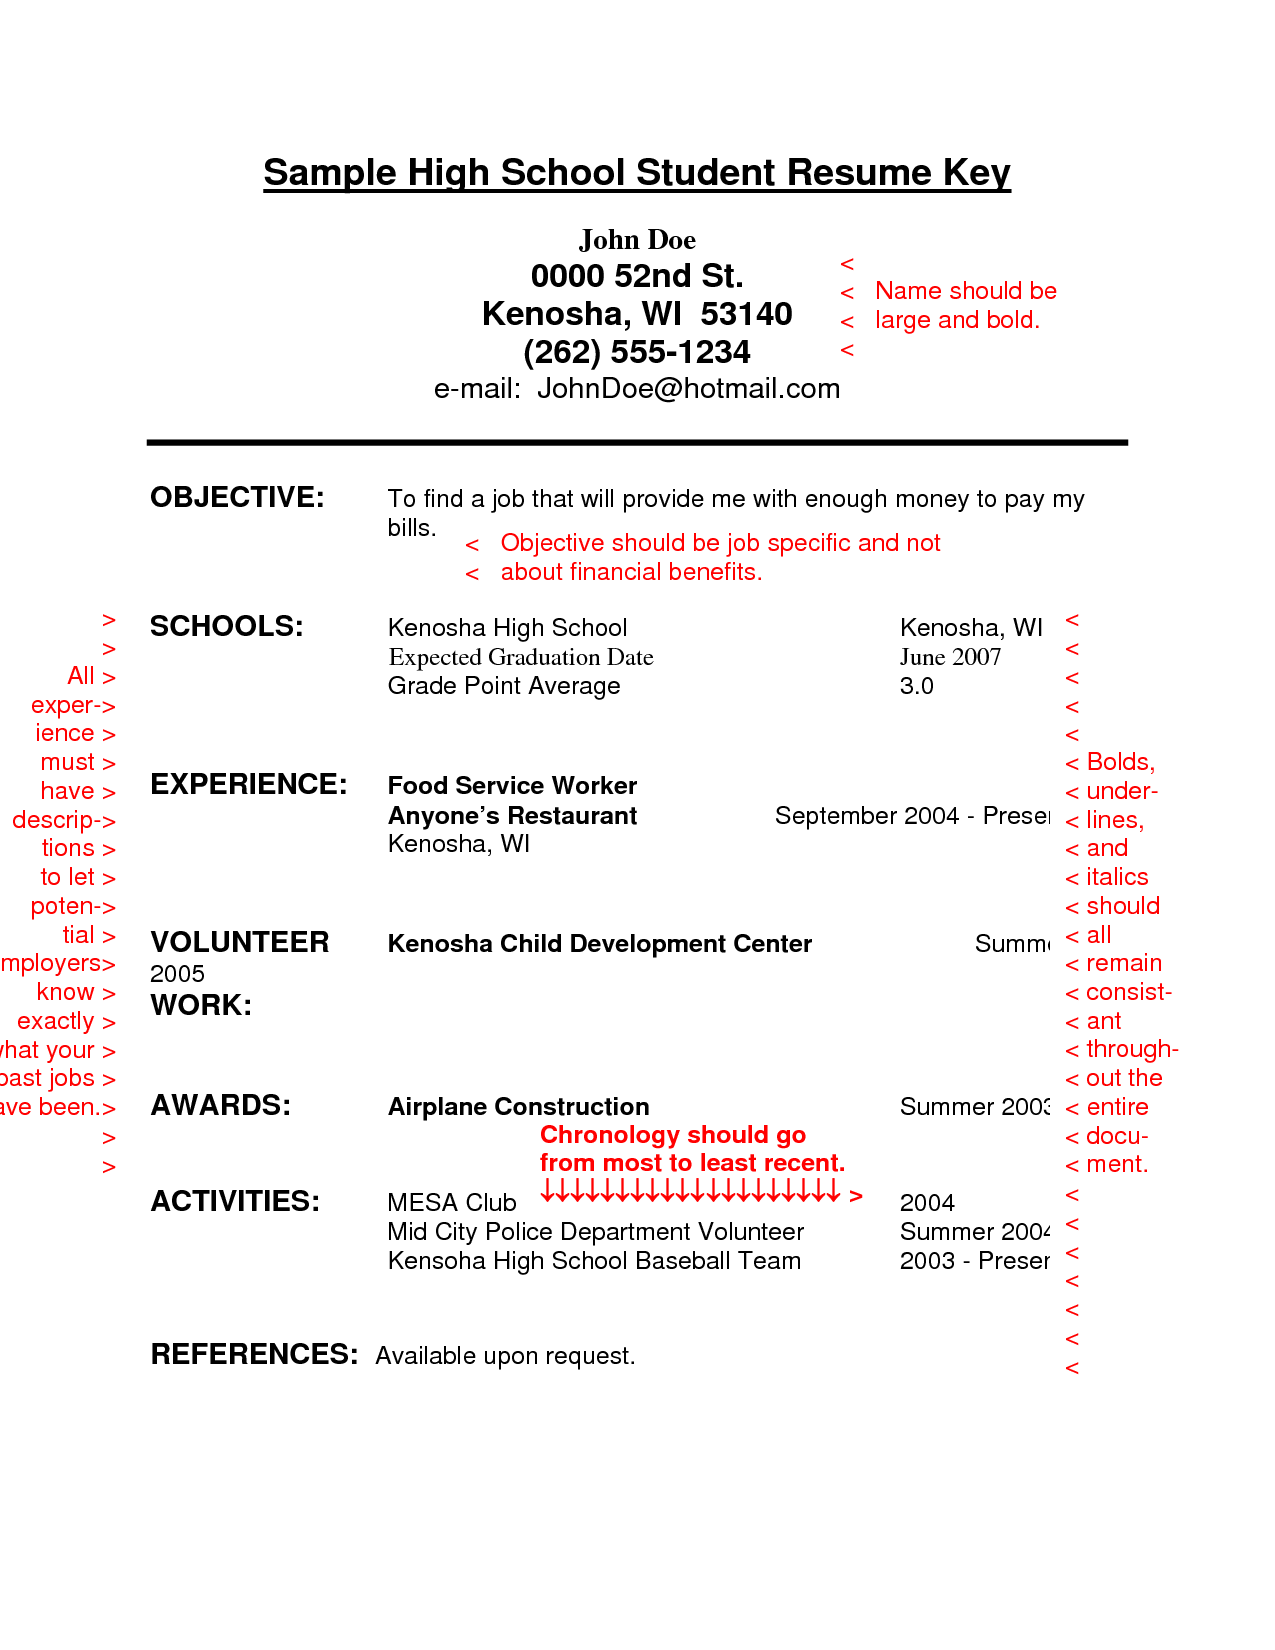 sample resume for high school students – Document Templates Online